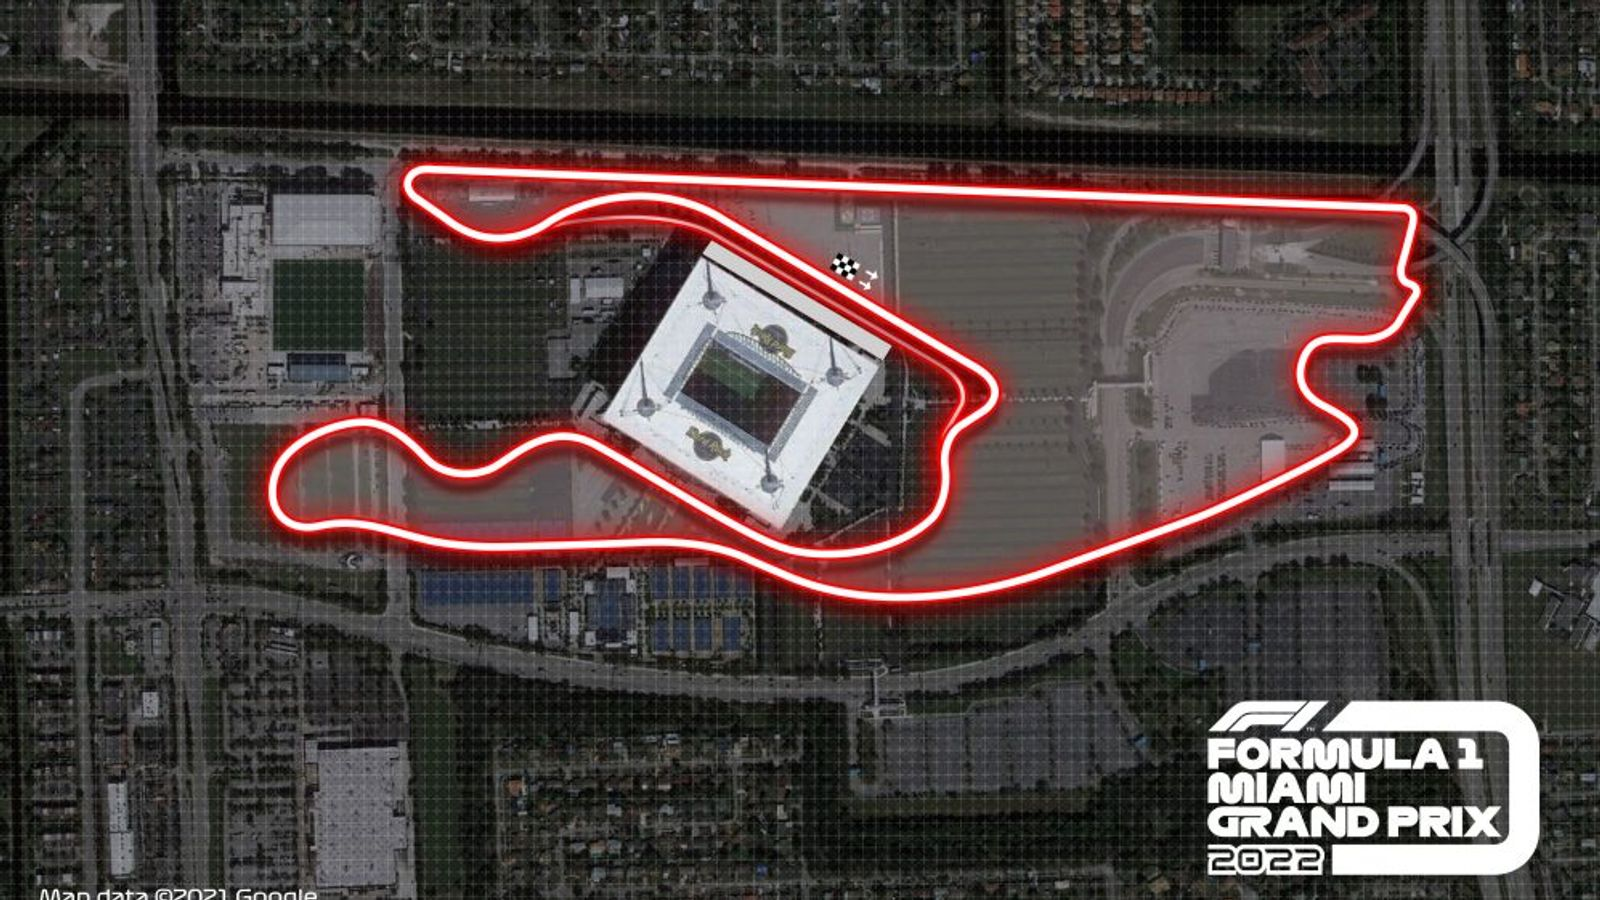 F1 race date for Miami GP debut confirmed